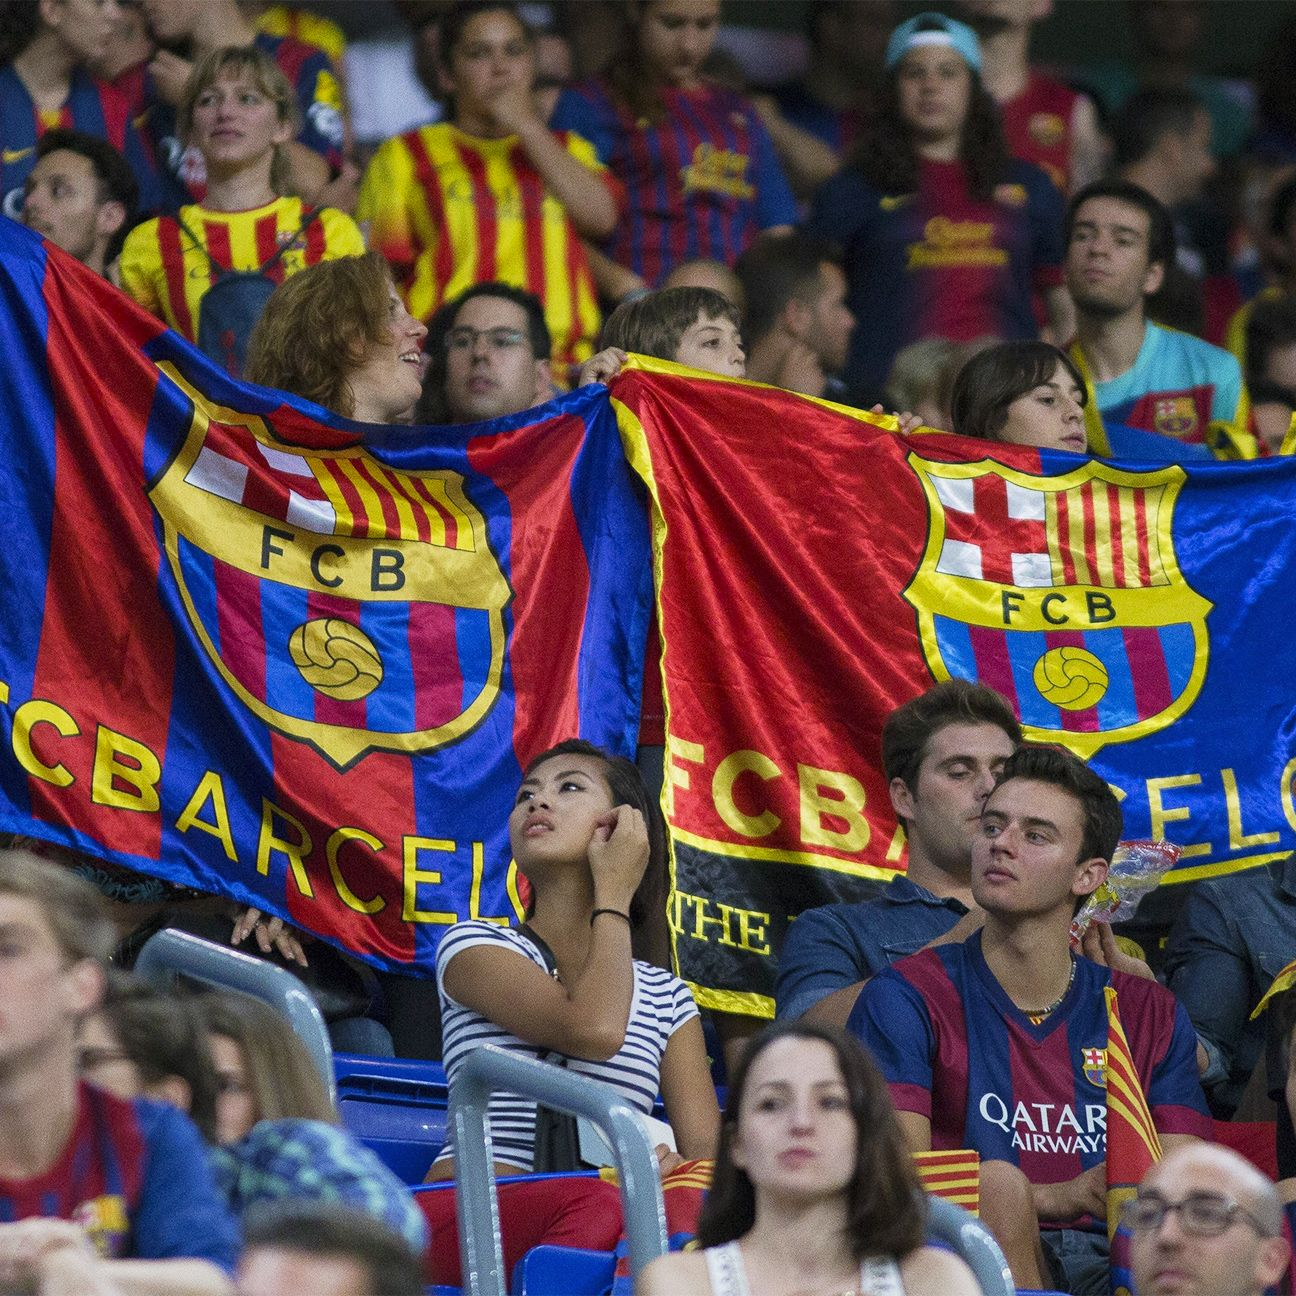 For the very large majority of FC Barcelona members, running for club president is a near impossibility.